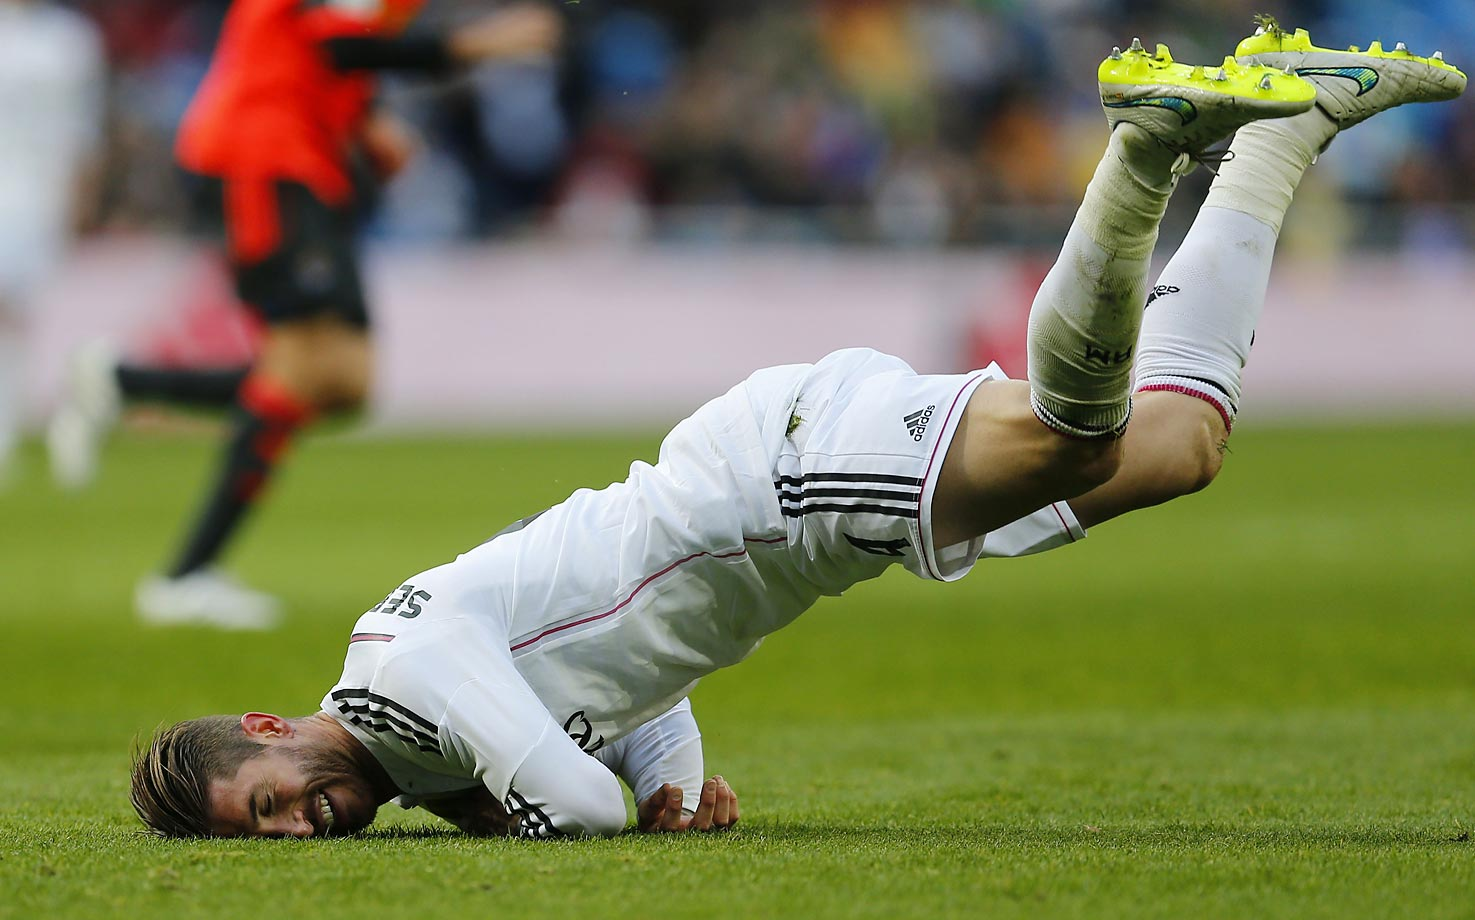 Real Madrid's Sergio Ramos makes a face-plant during a Spanish La Liga soccer match between Real Madrid and Real Sociedad.